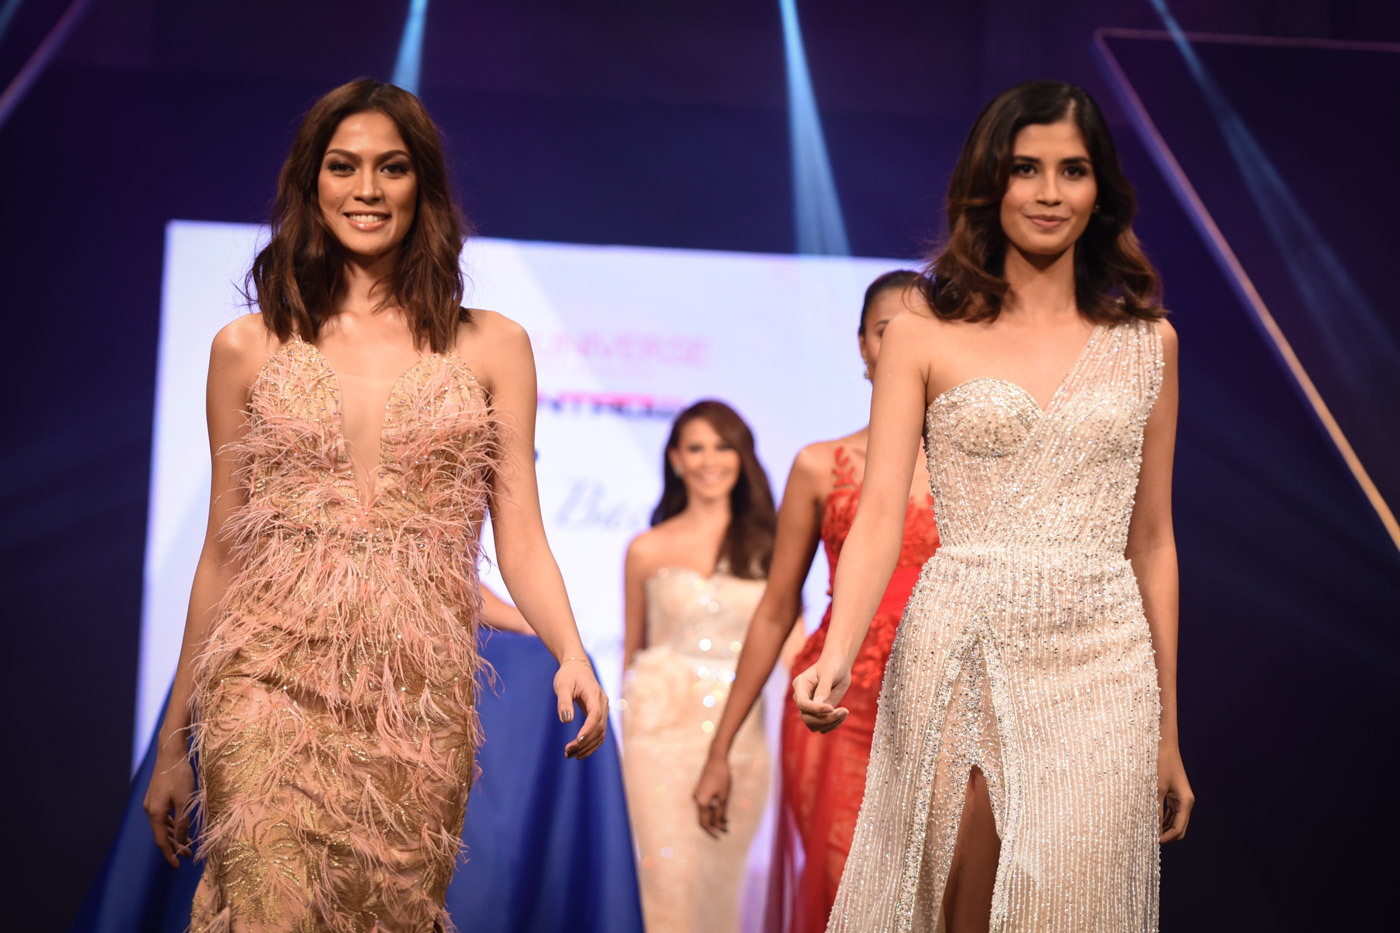 PINOY PRIDE. Former Miss Universe Philippines title holders Ariella Arida and Shamcey Supsup walk the runway.